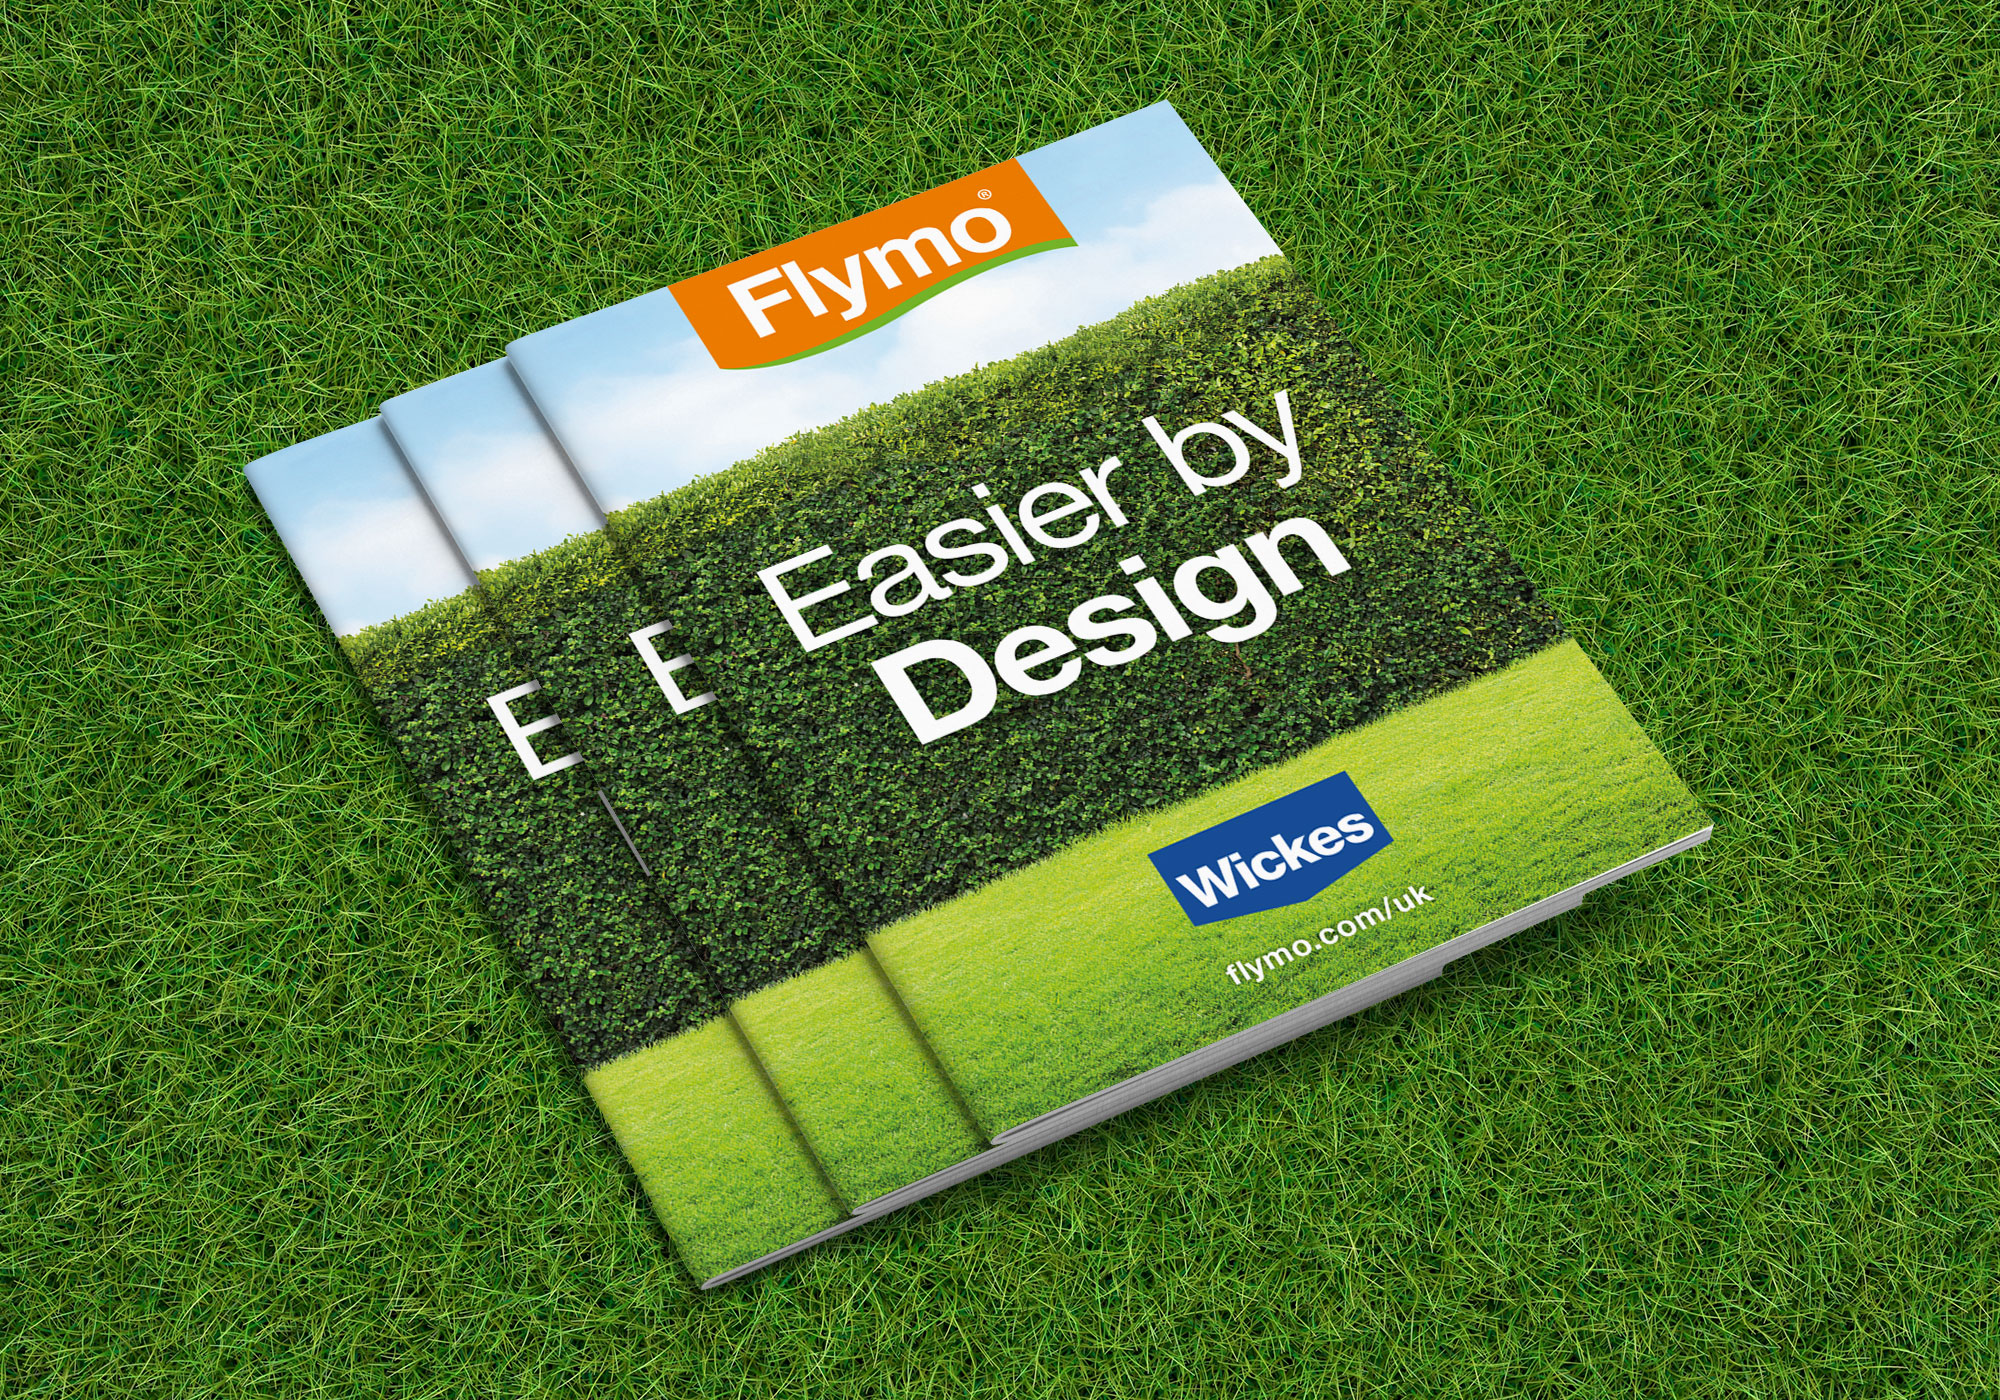 Set of Flymo product booklets on grass background